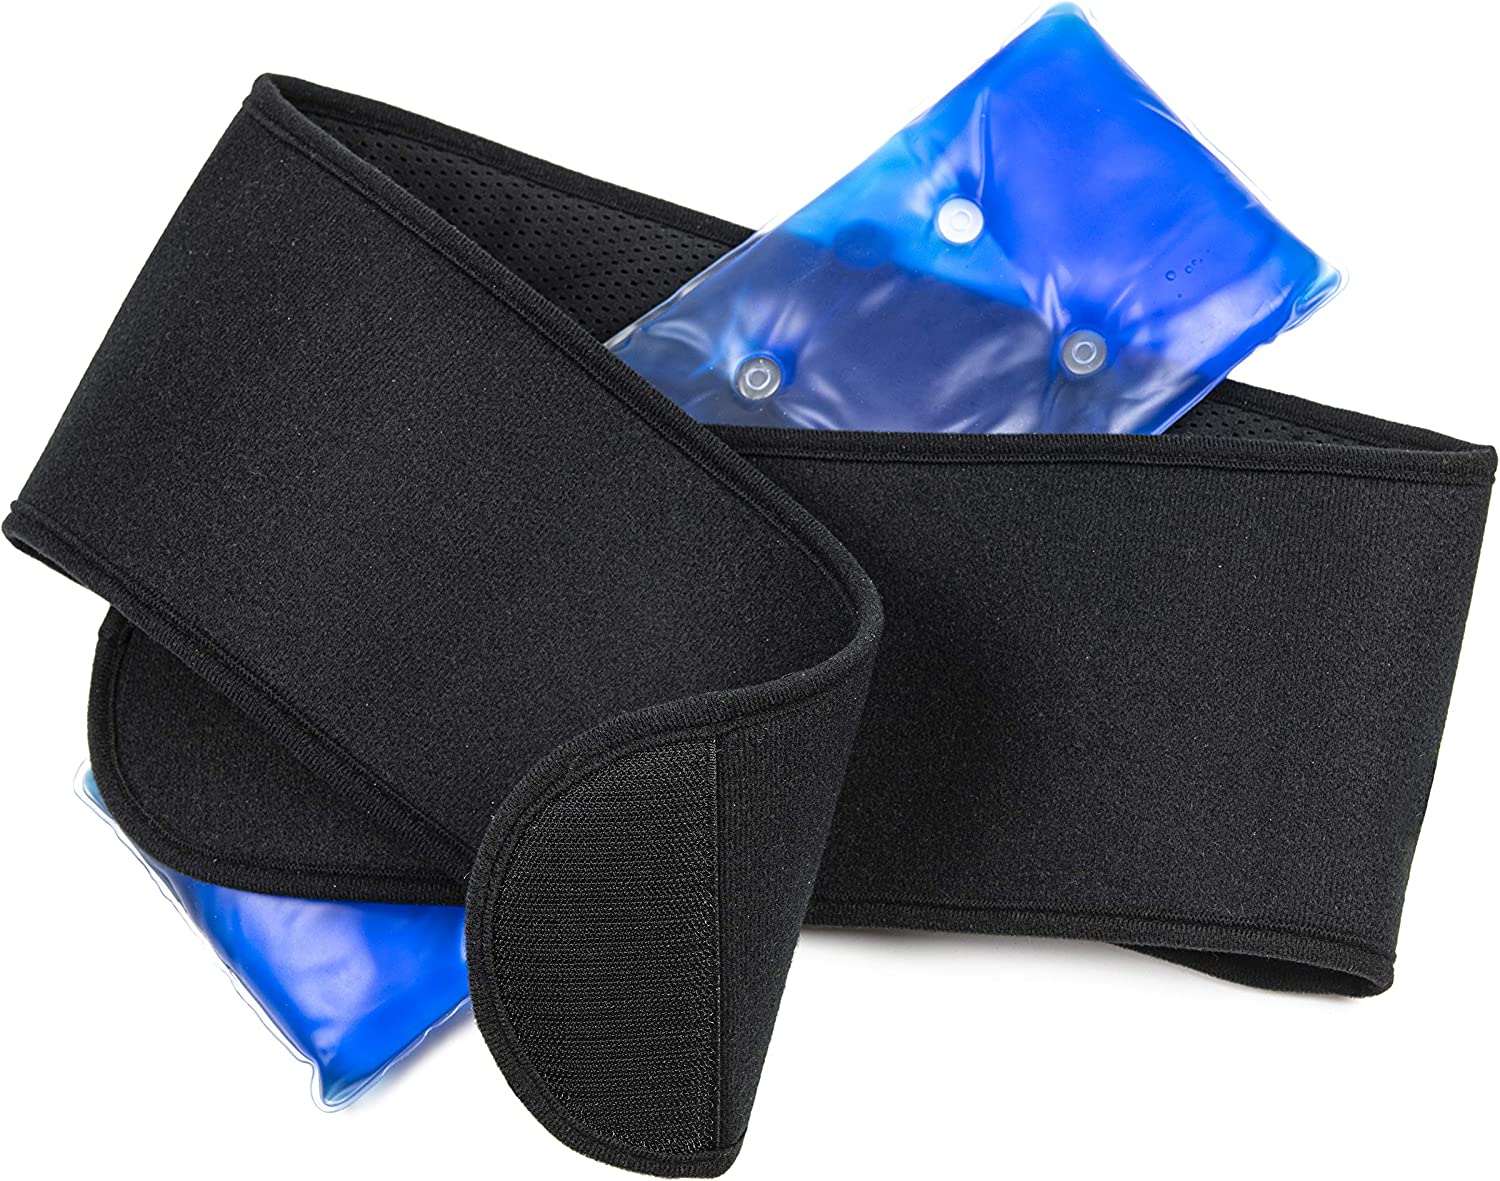 Hot and Cold Gel Pad with Straps - Reusable Ice Treatment for Back Pain Relief and Sports Injuries